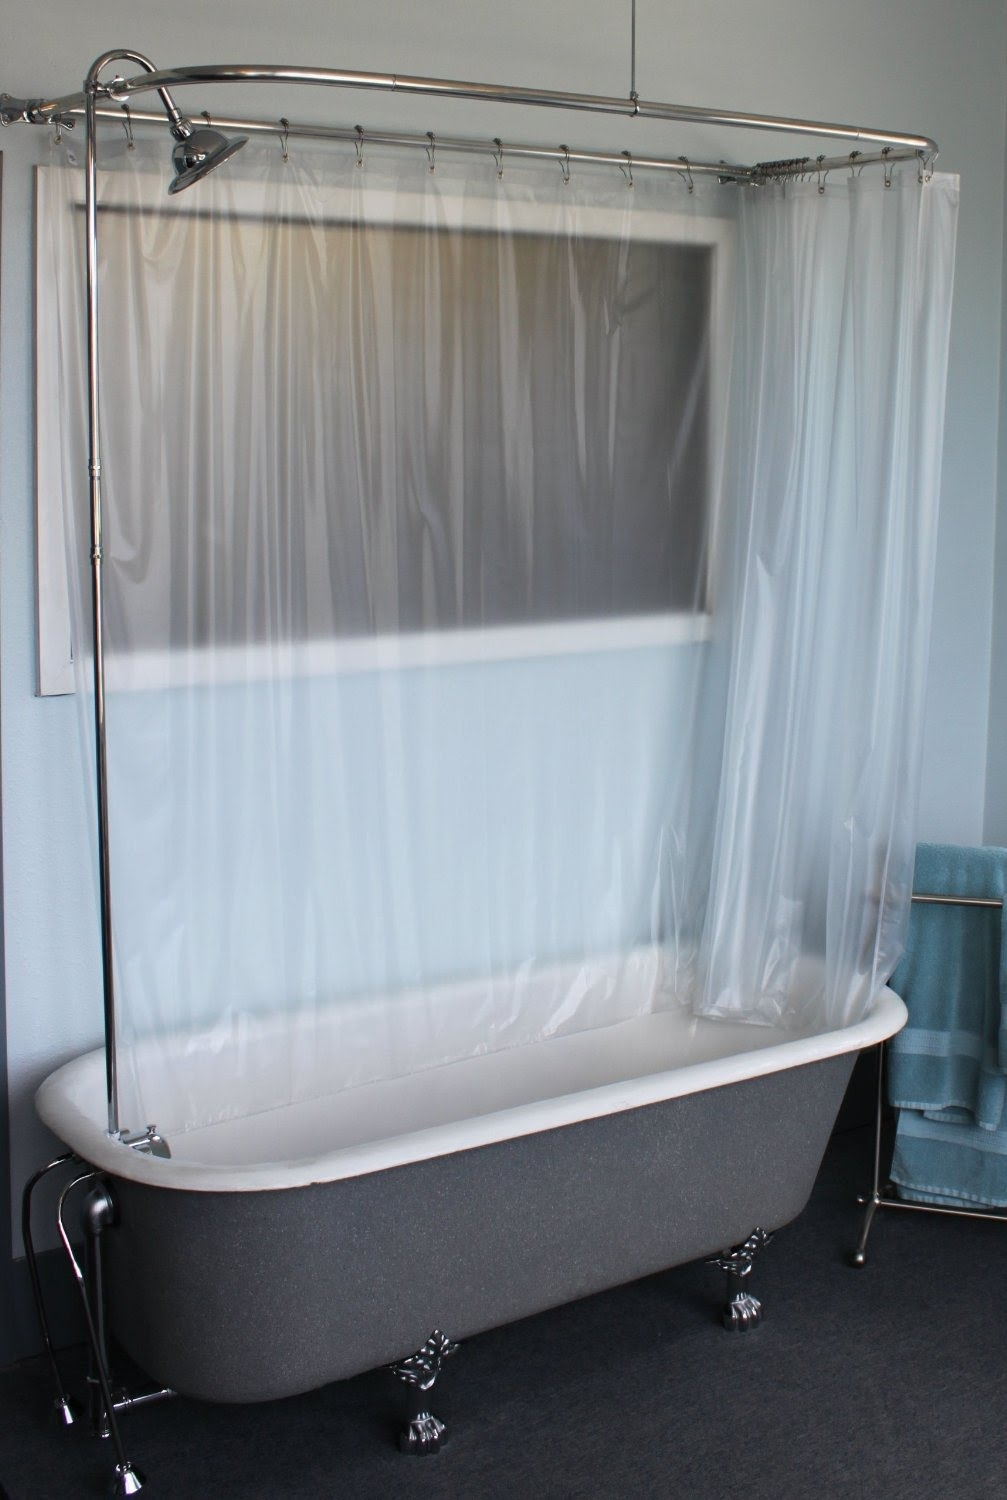 Claw Foot Tub Wall Mounted Shower Curtain Rod Add A Shower With Throughout Claw Tub Shower Curtains (Image 10 of 25)